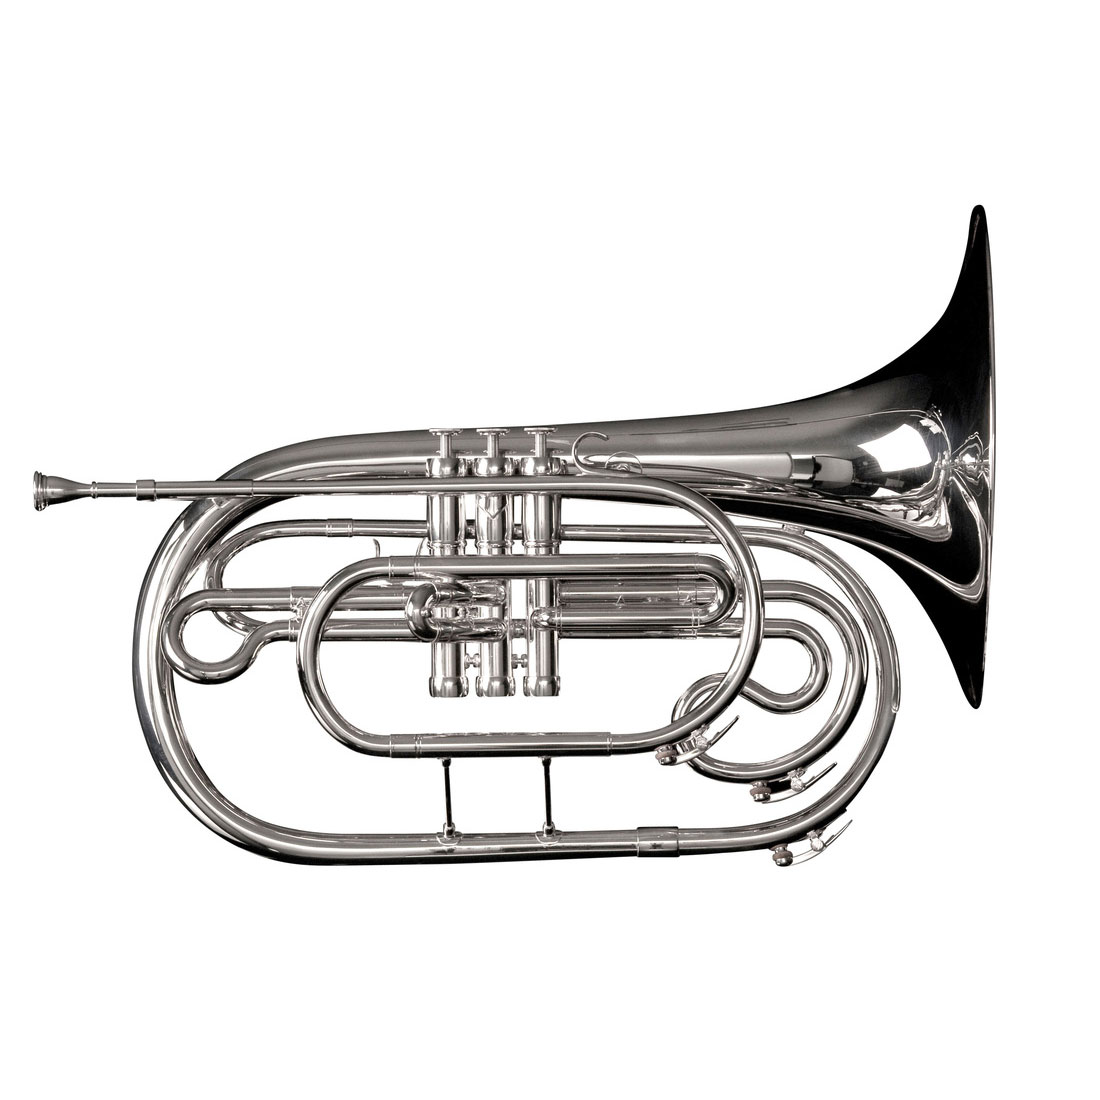 Brass Instruments List  Examples and Forms